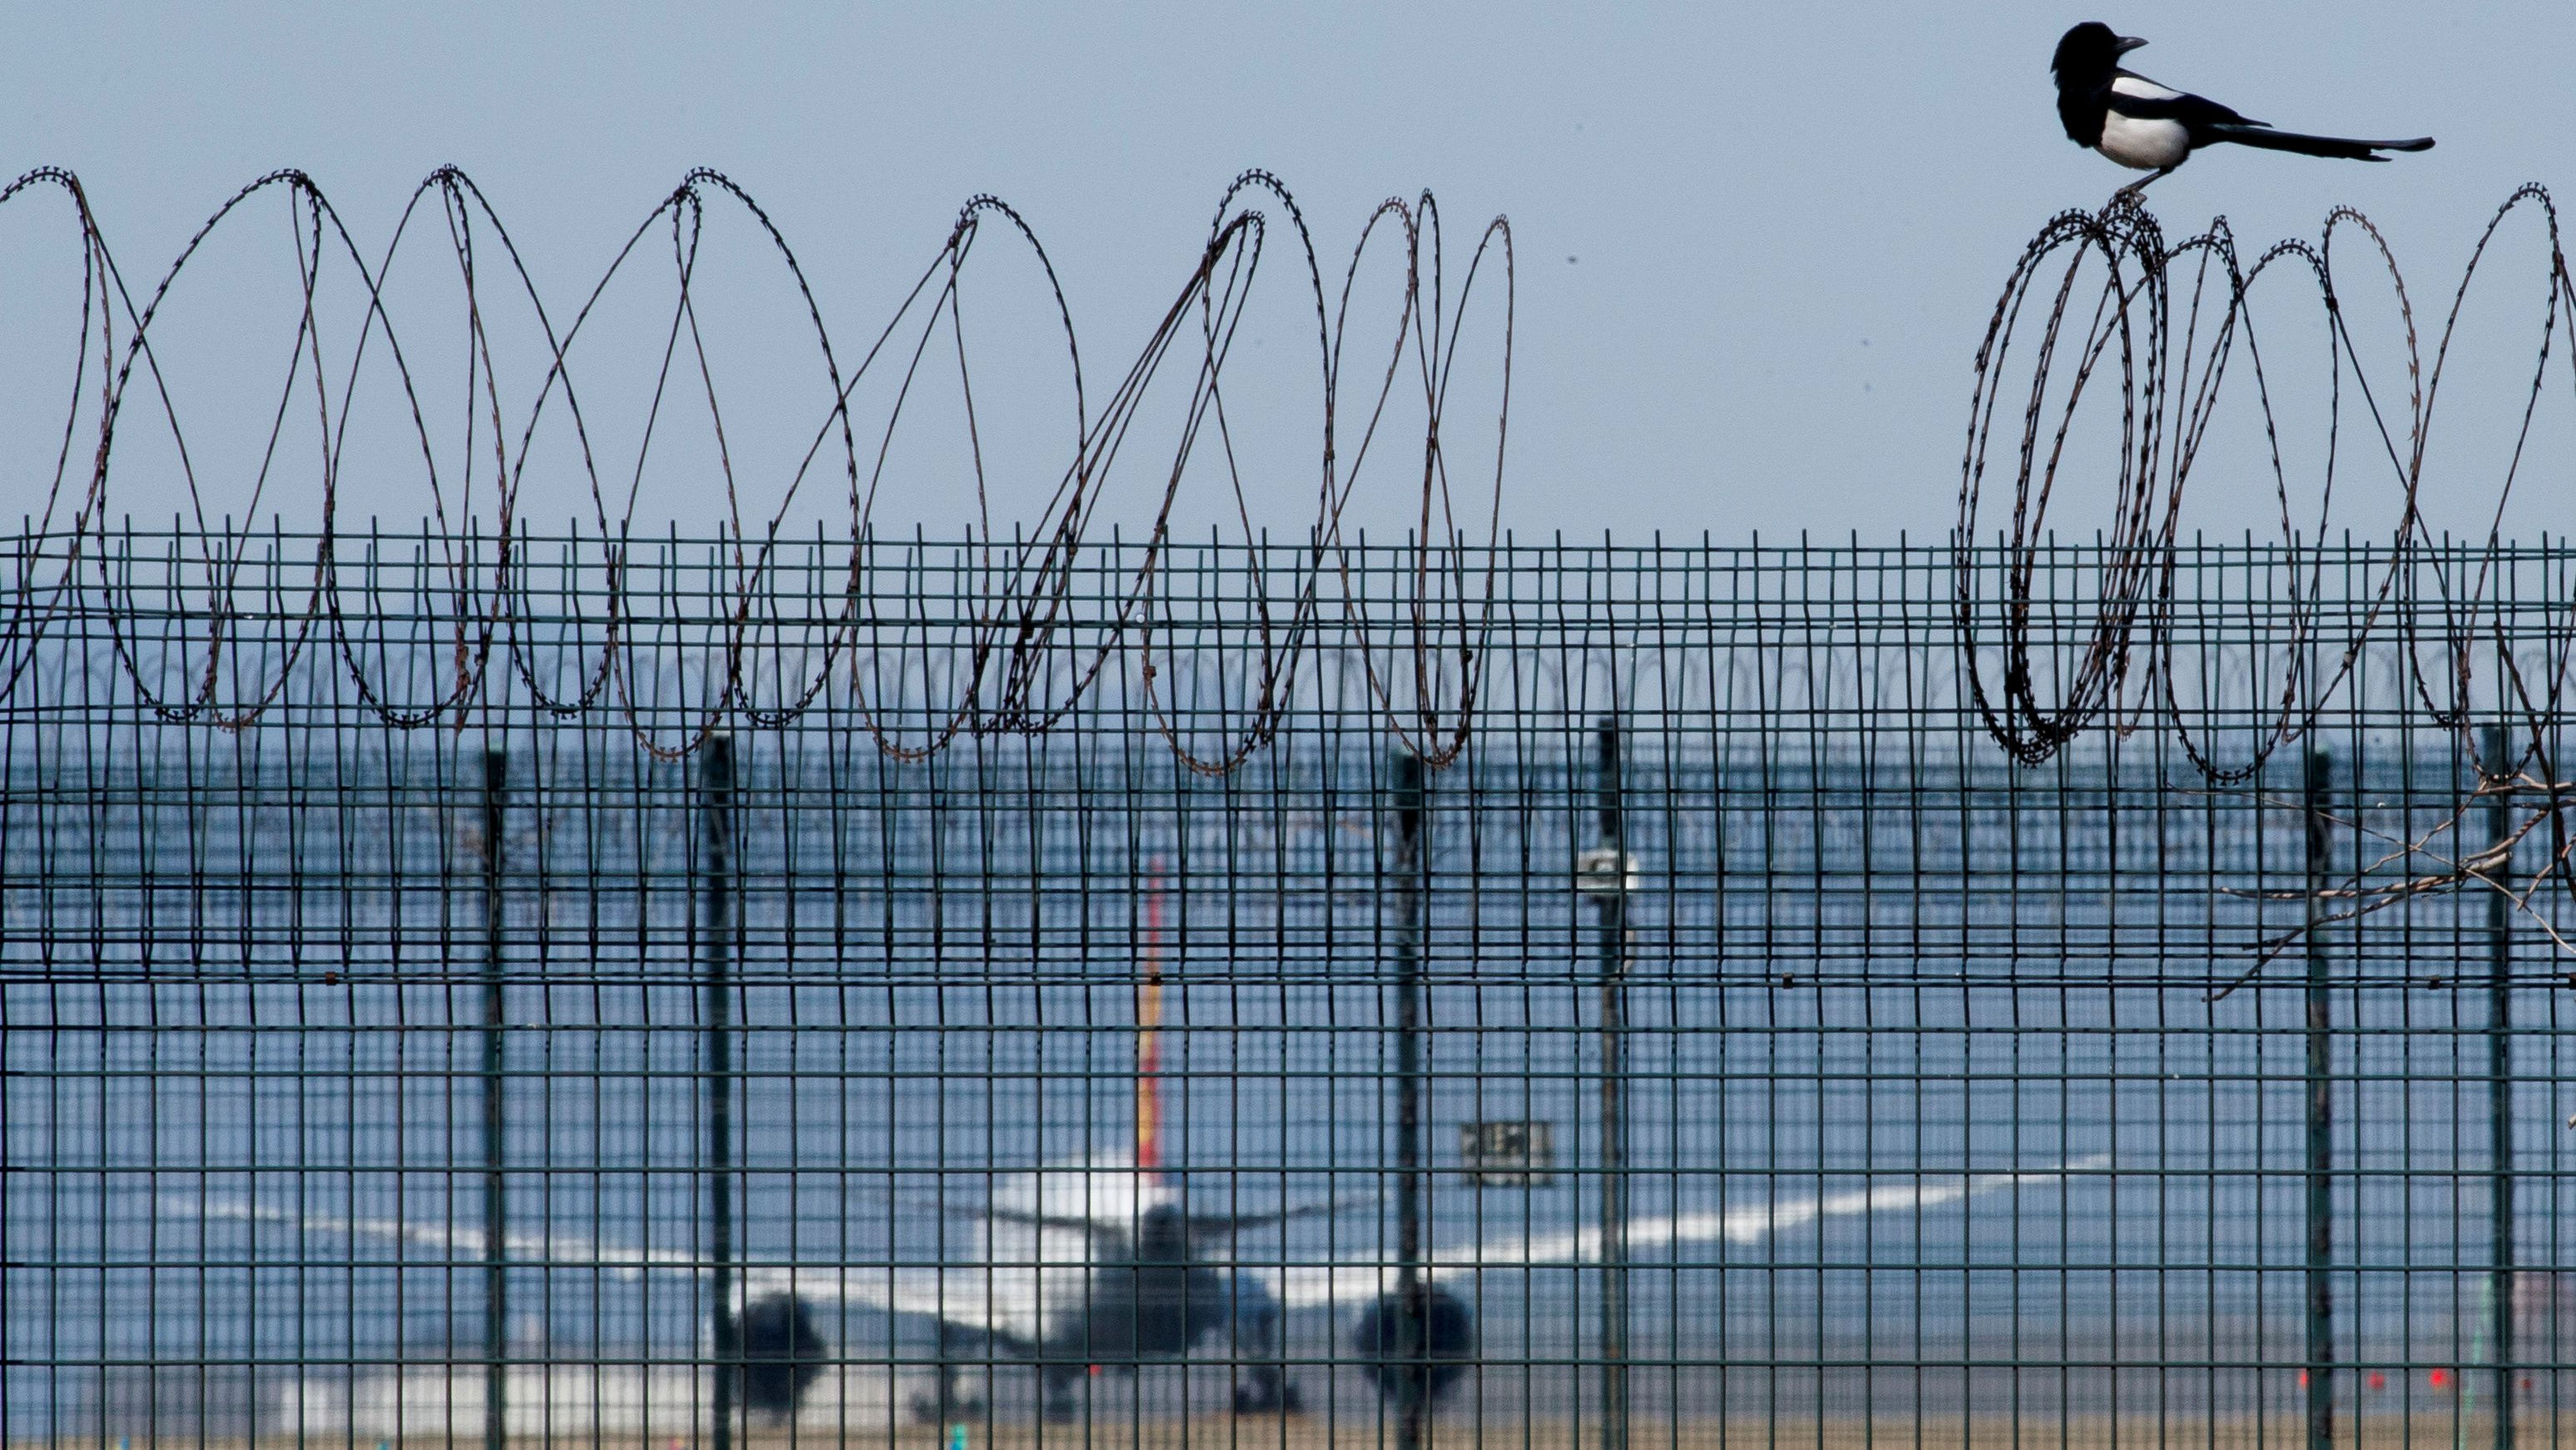 A bird sits on the barbed wire fence surrounding Beijing Capital International Airport as a plane taxies.